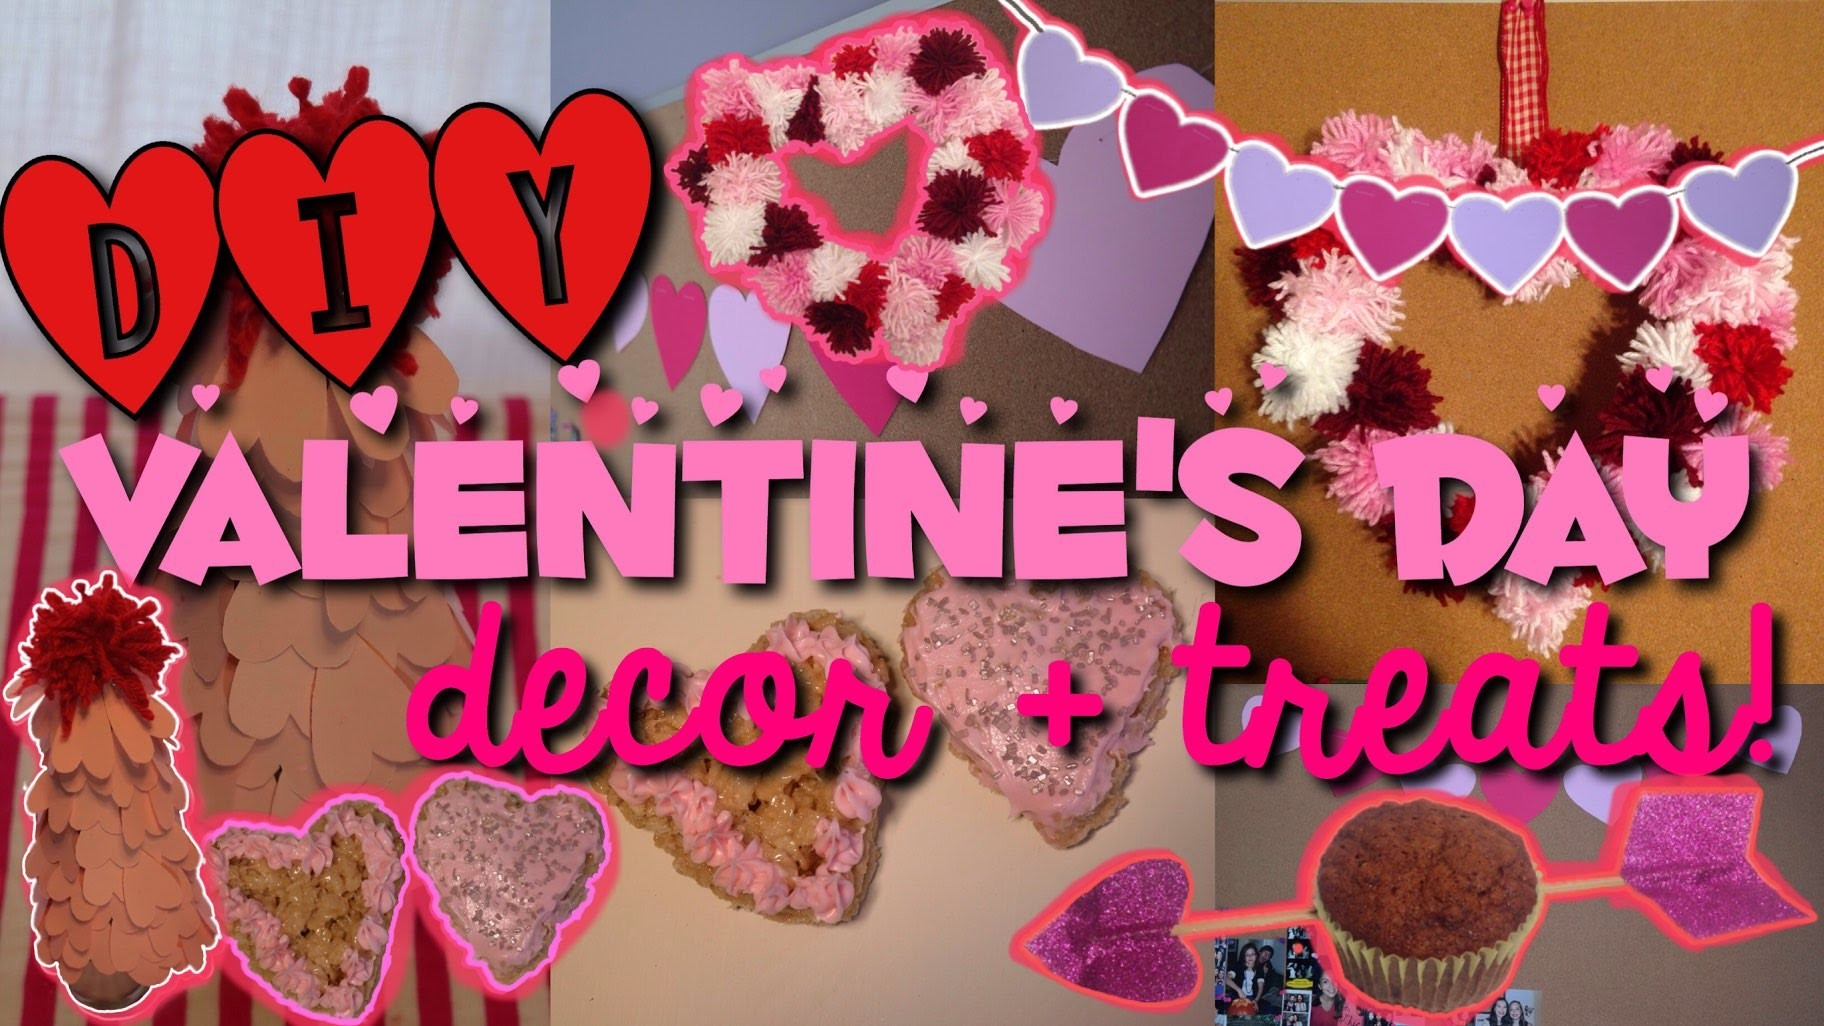 5 DIY Valentine's Day Decor + Treats! Easy & Cute!